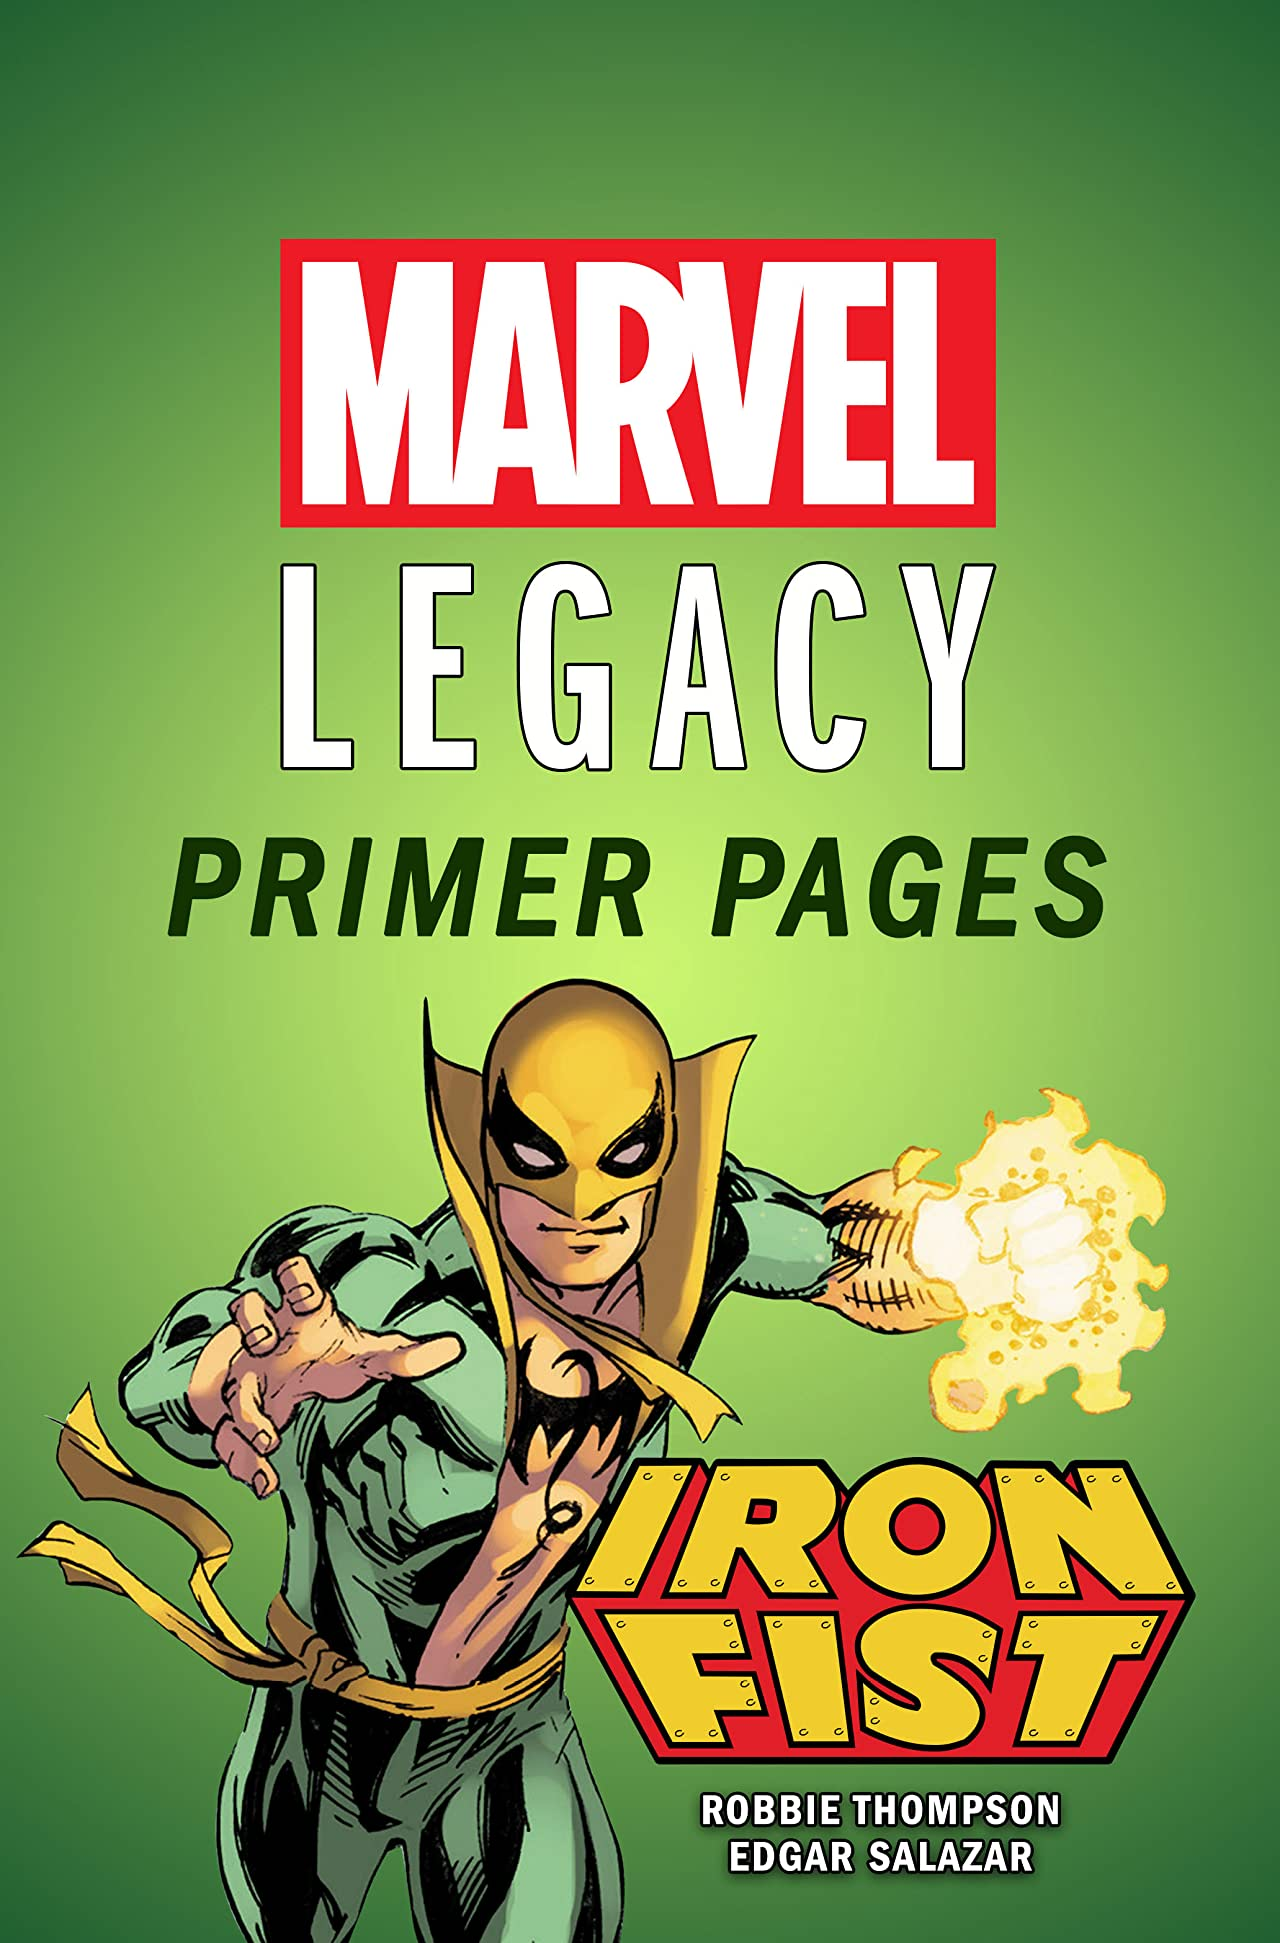 Iron Fist - Marvel Legacy Primer Pages